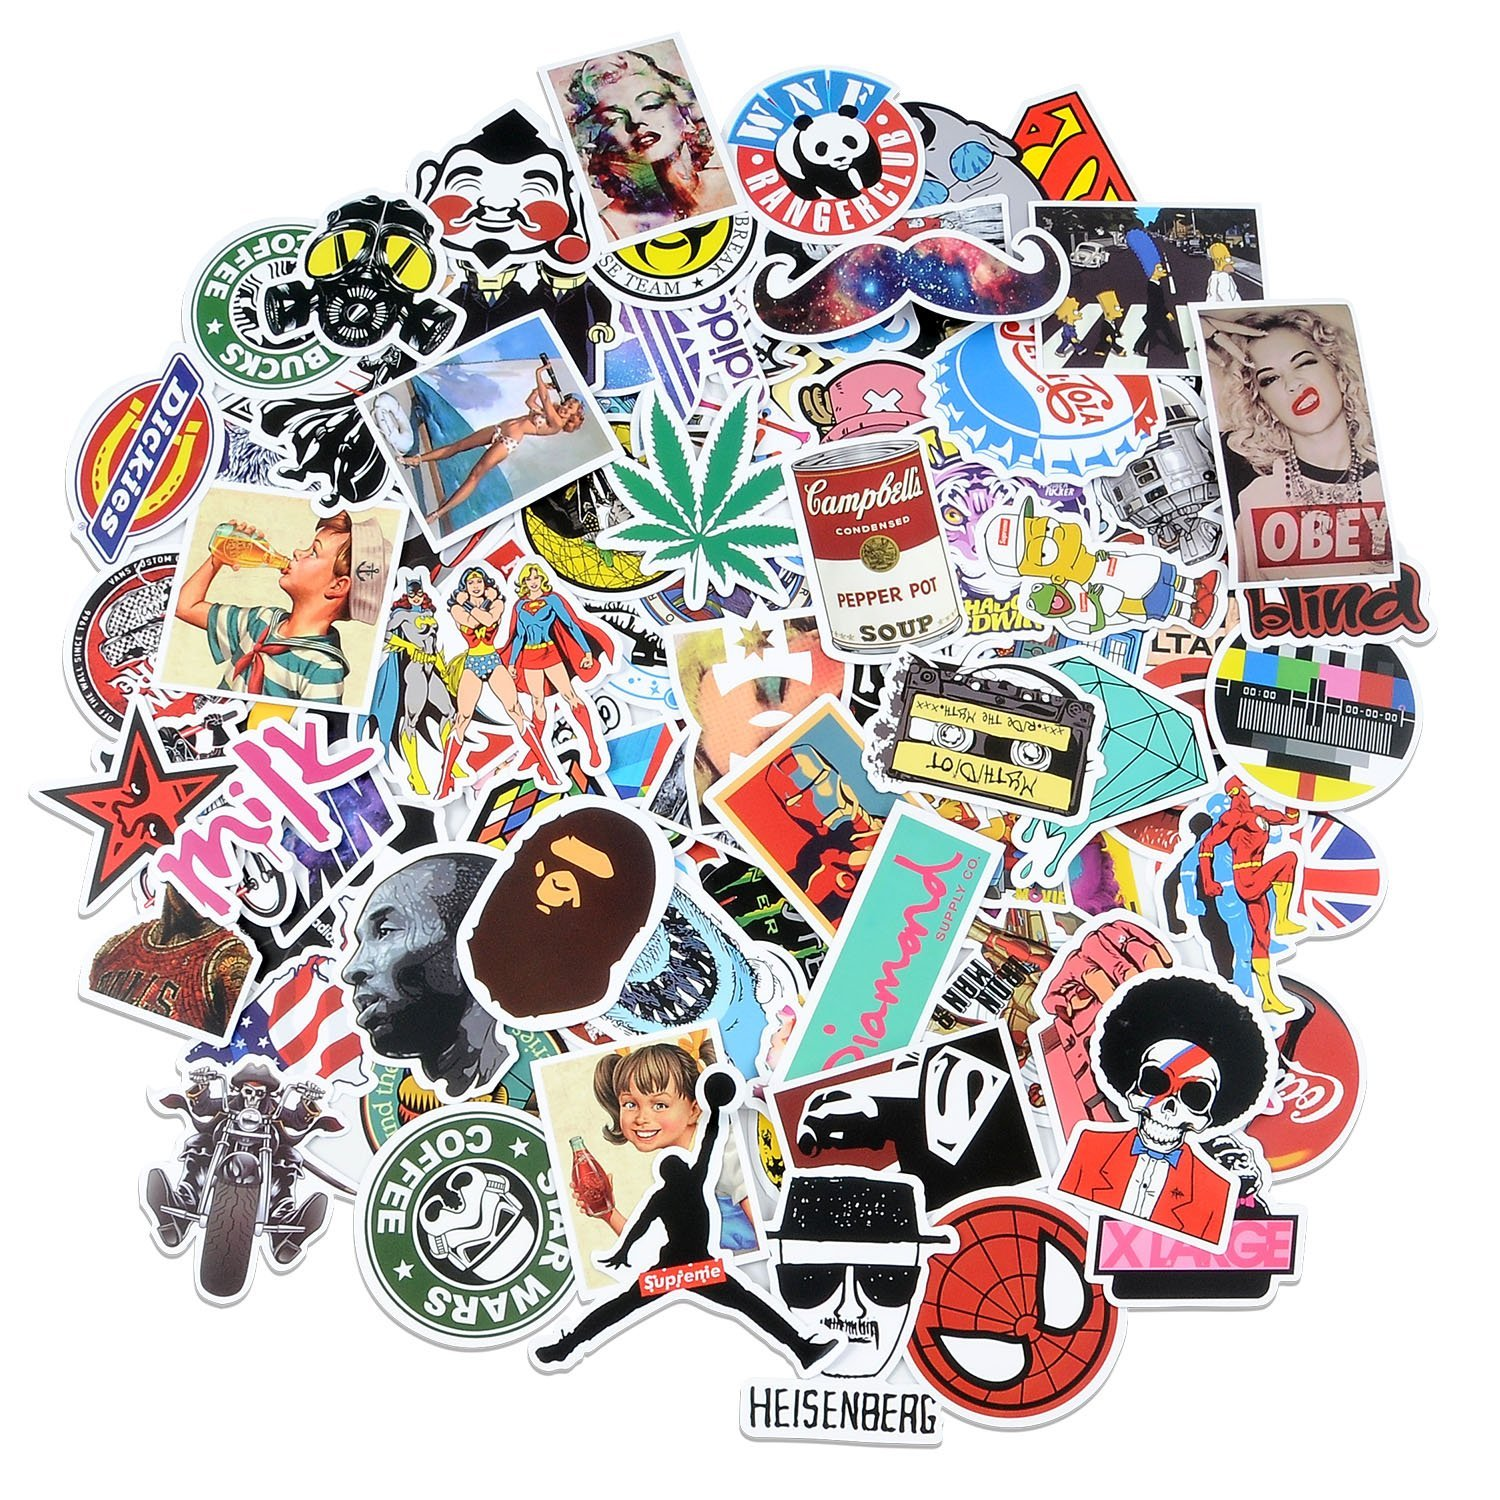 Car Stickers [100 pcs], Breezypals Laptop Stickers Motorcycle Bicycle Luggage Decal Graffiti Patches Skateboard Stickers for Laptop - No-Duplicate Sticker Pack